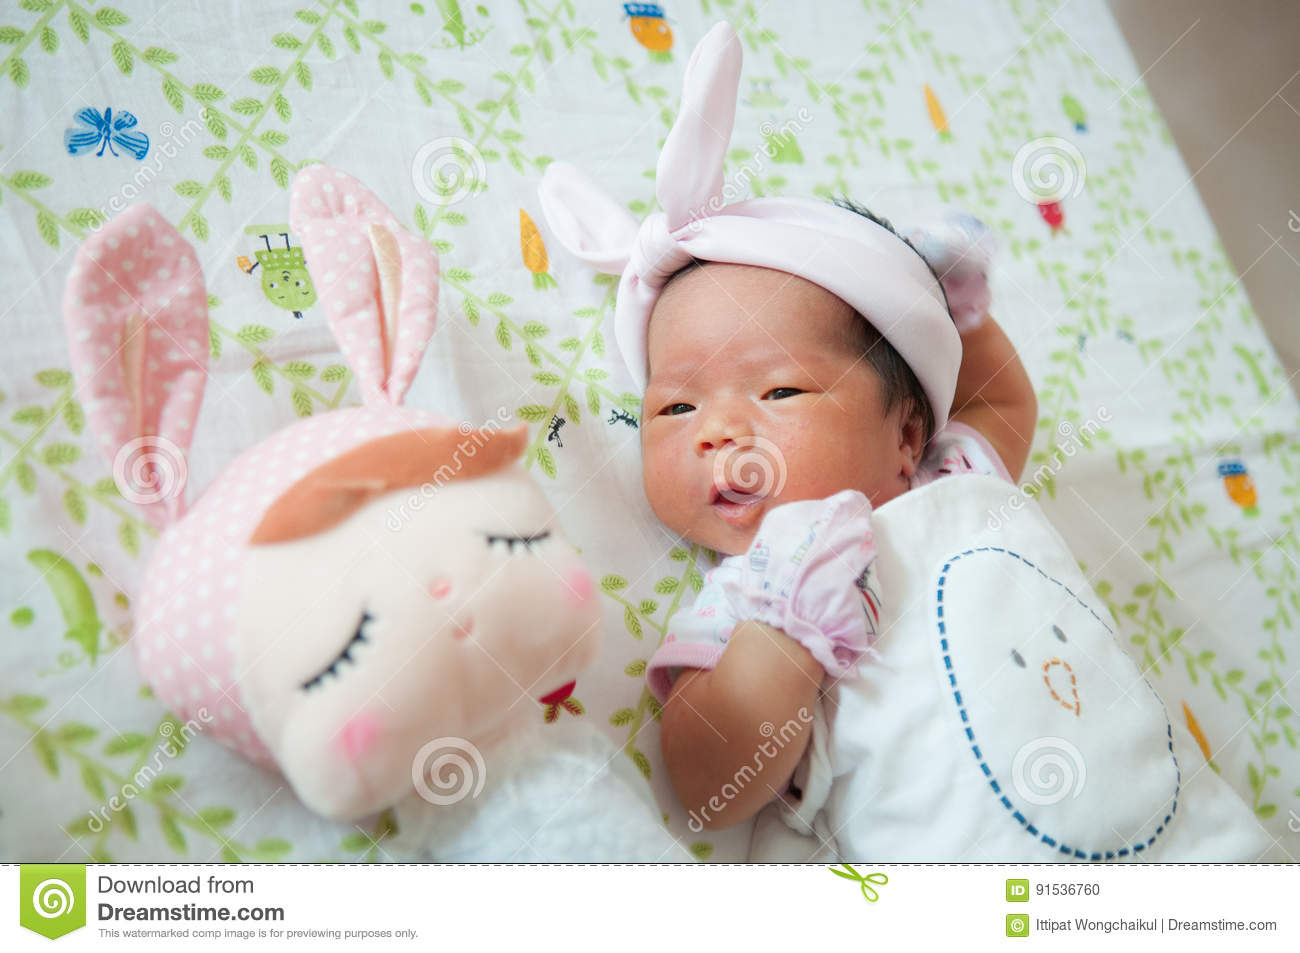 Focus At Baby Girl With Nice Headband While Snoozing And Playing A Newborn Can Feel Small Fragile Learn How To Care For Your Find Out What Do If Has Colic Jaundice Or An Umbilical